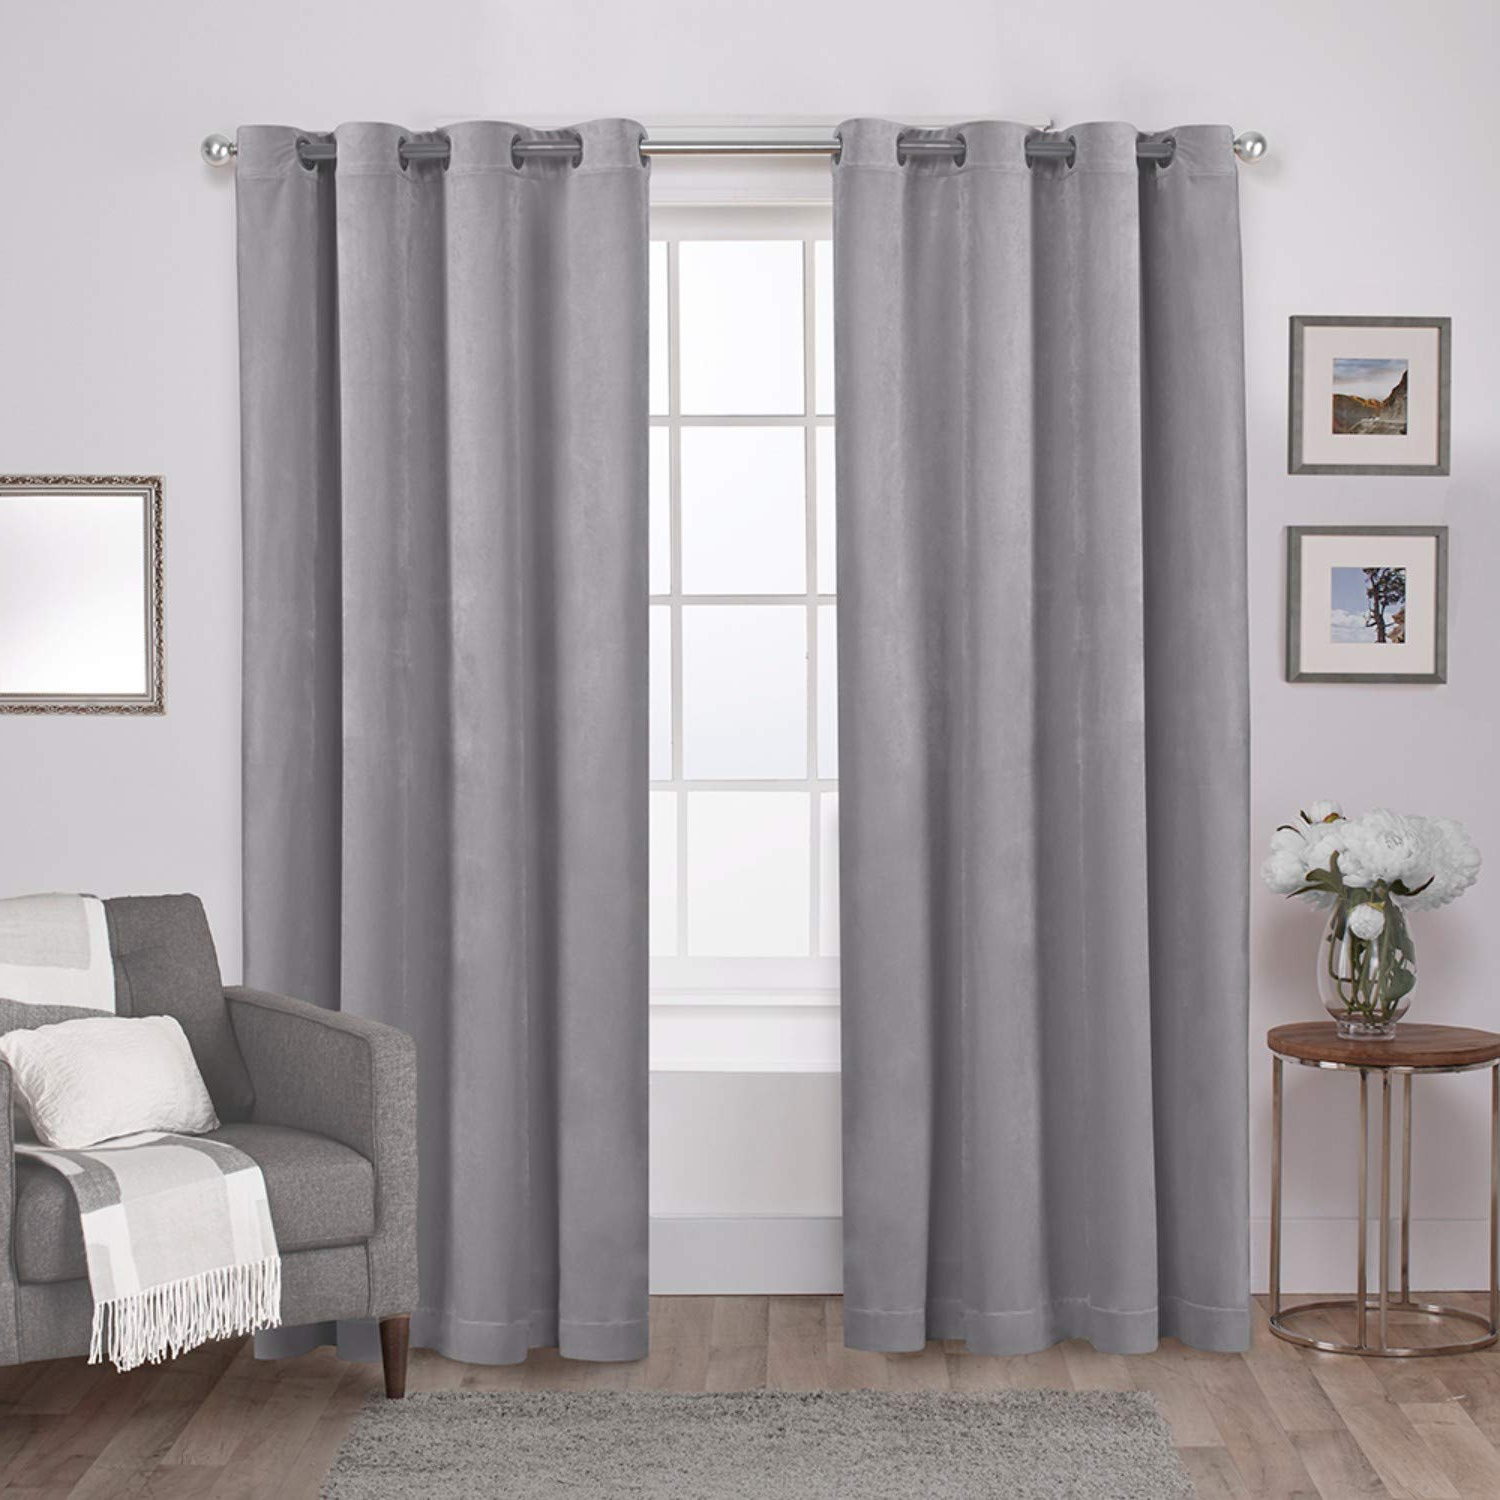 Popular Exclusive Home Curtains Velvet Heavyweight Window Curtain Panel Pair With Grommet Top, 54x96, Silver, 2 Piece With Regard To Velvet Heavyweight Grommet Top Curtain Panel Pairs (View 2 of 20)